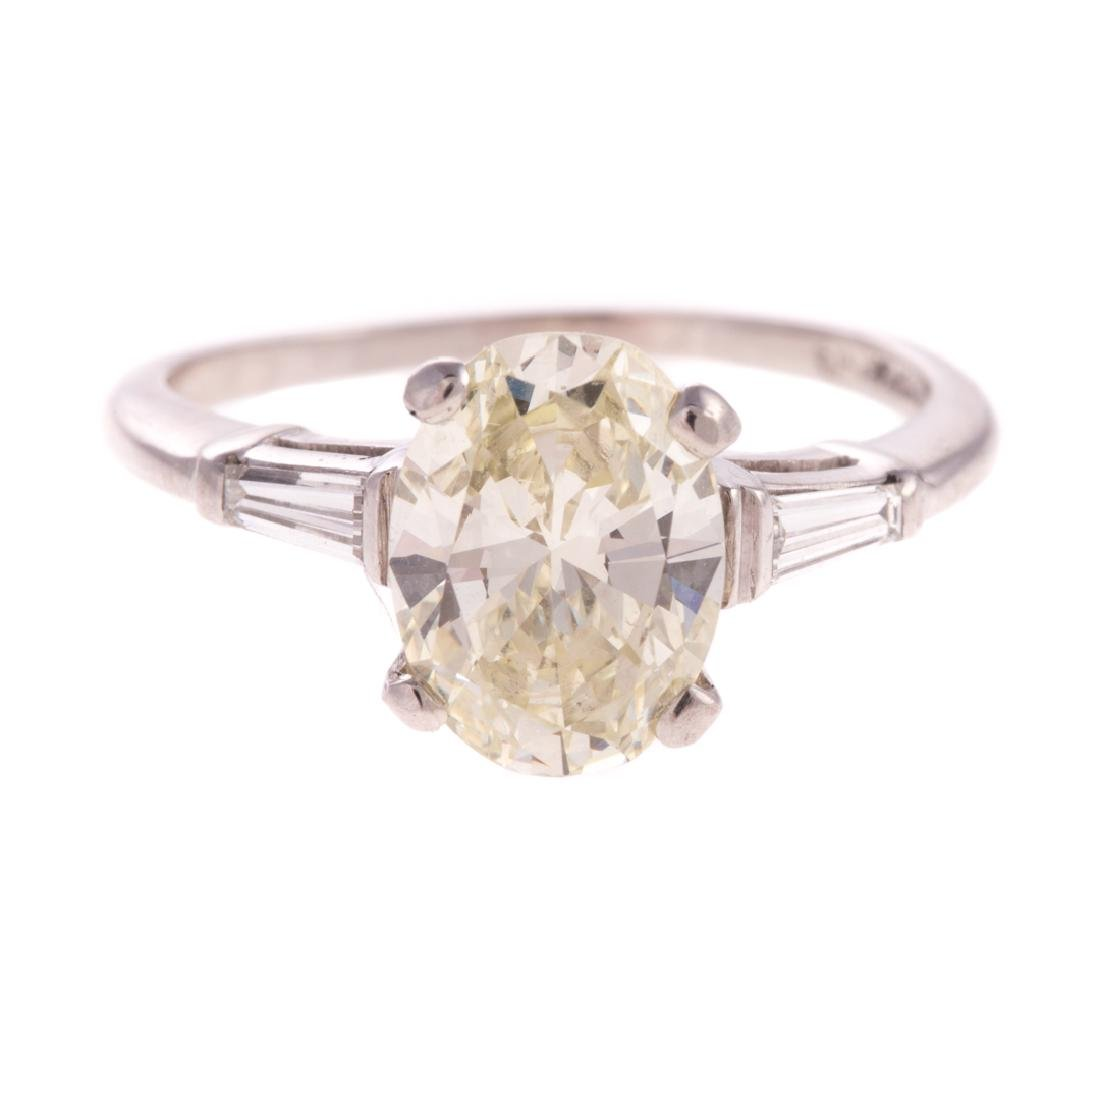 A Lady's 2.21ct Oval Diamond Engagement Ring